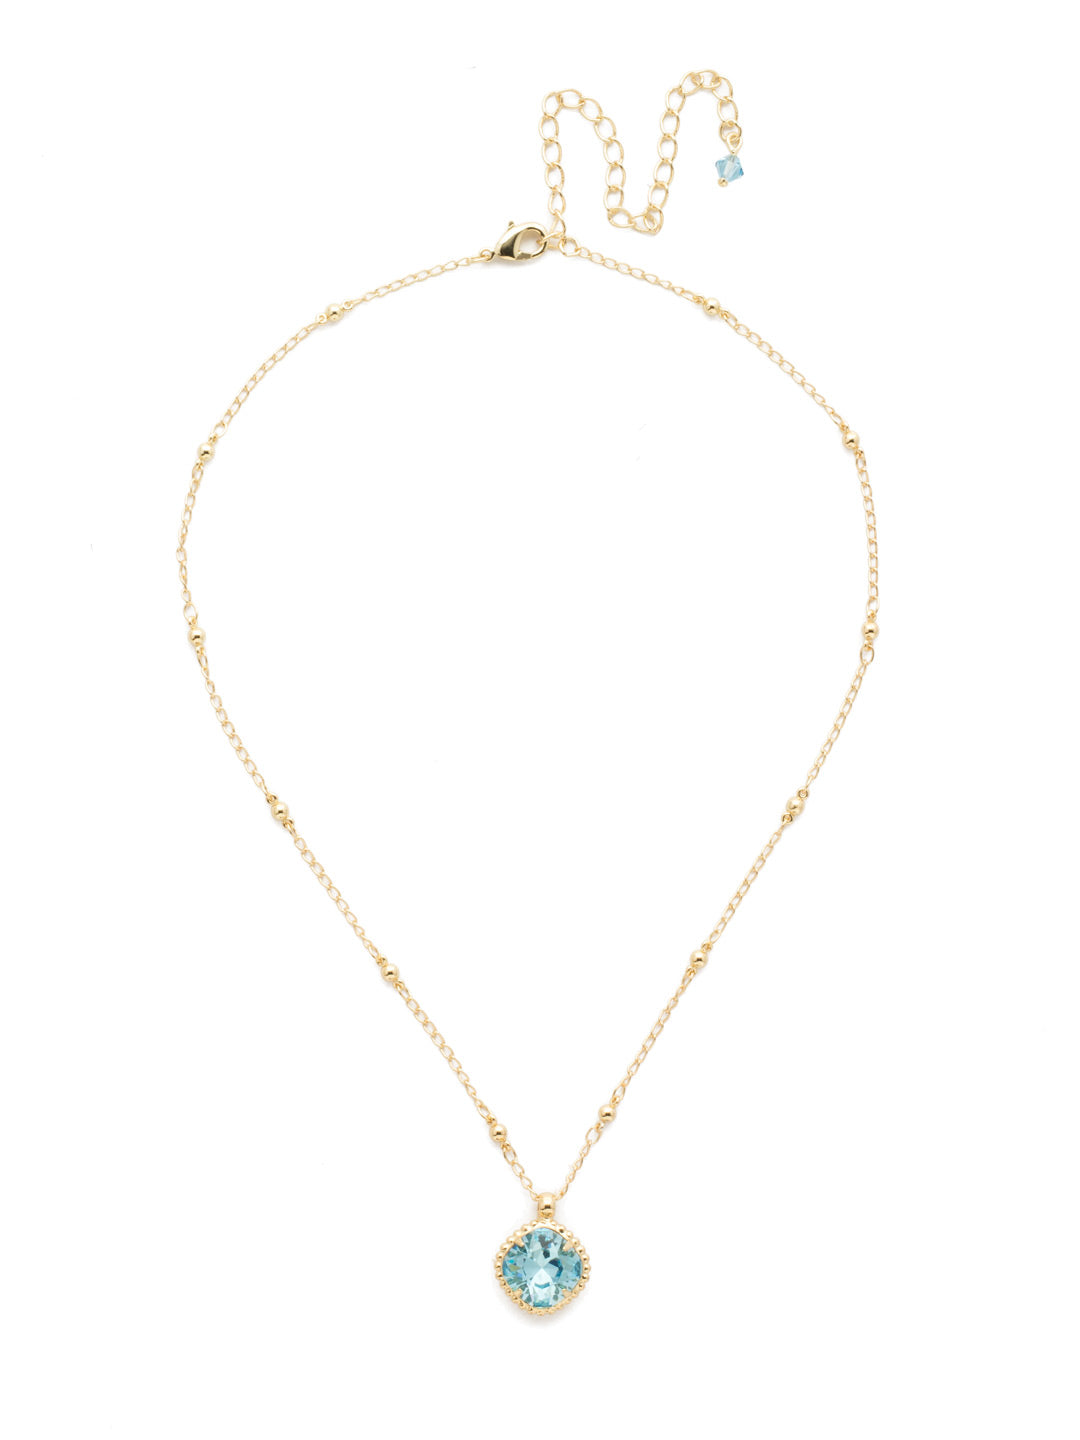 Cushion-Cut Solitaire Necklace - Sorrelli Essentials - NDS50BGAQU